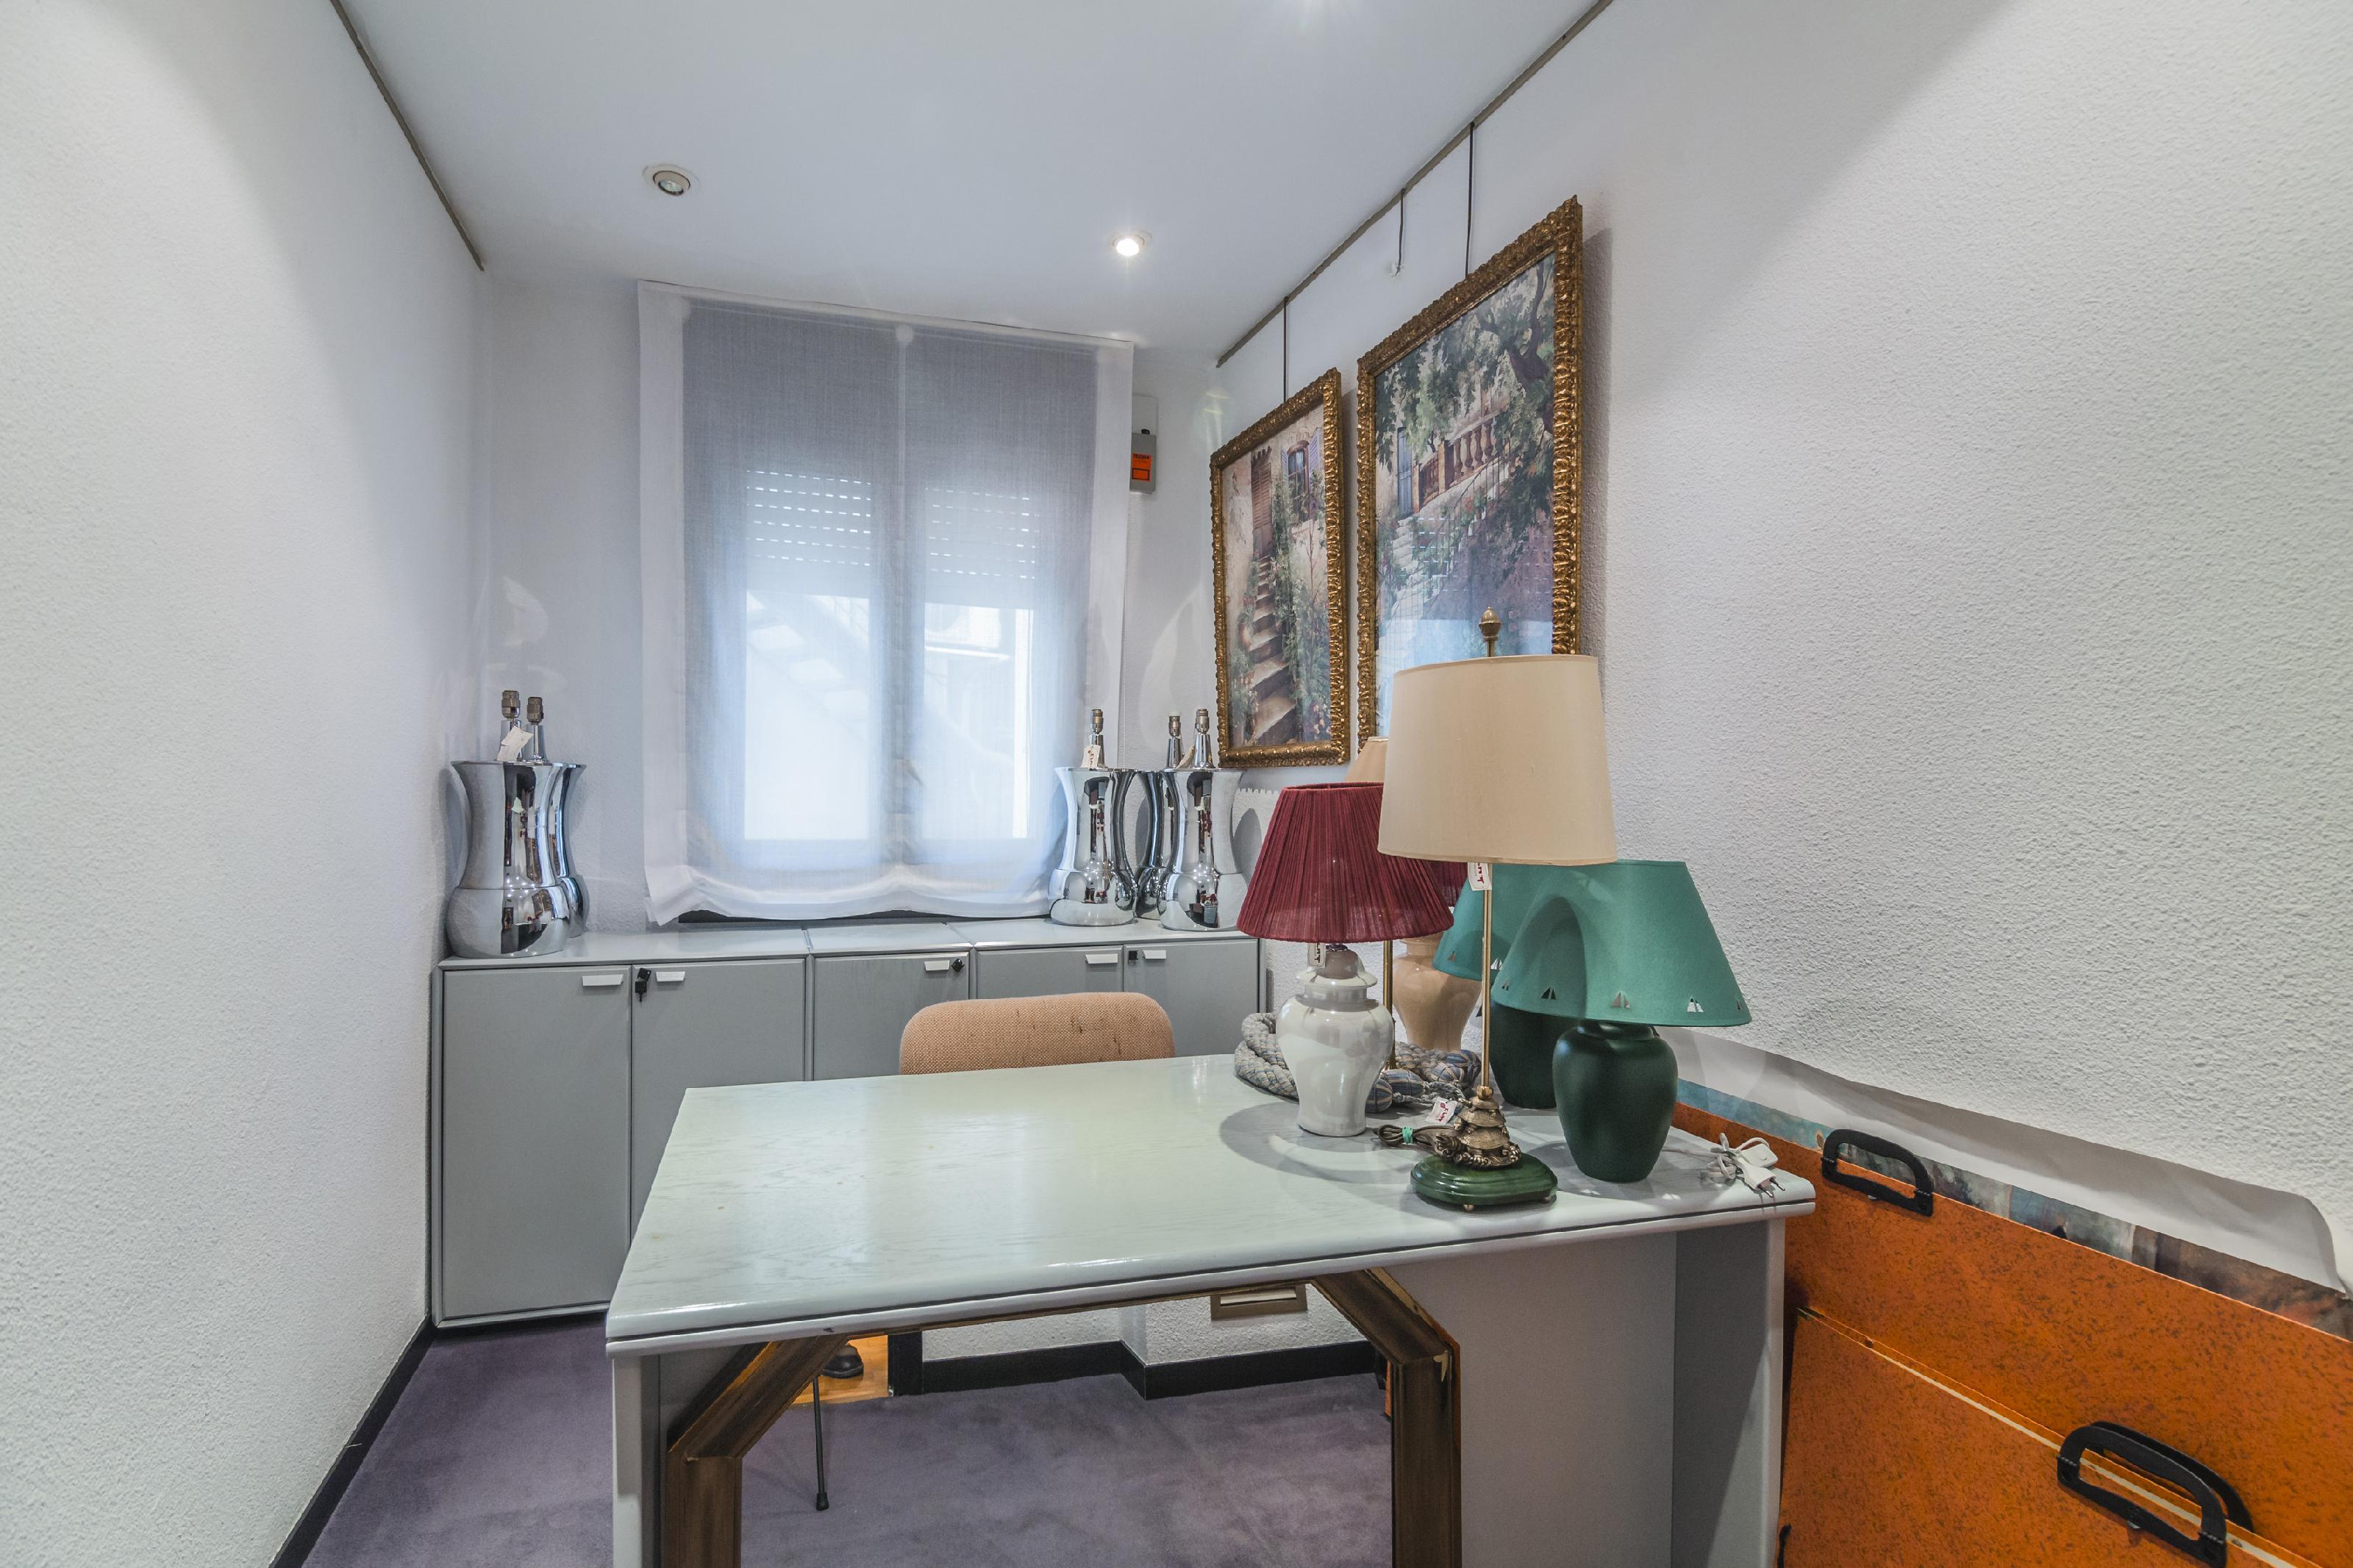 223855 Penthouse for sale in Sarrià-Sant Gervasi, Sant Gervasi-Galvany 14